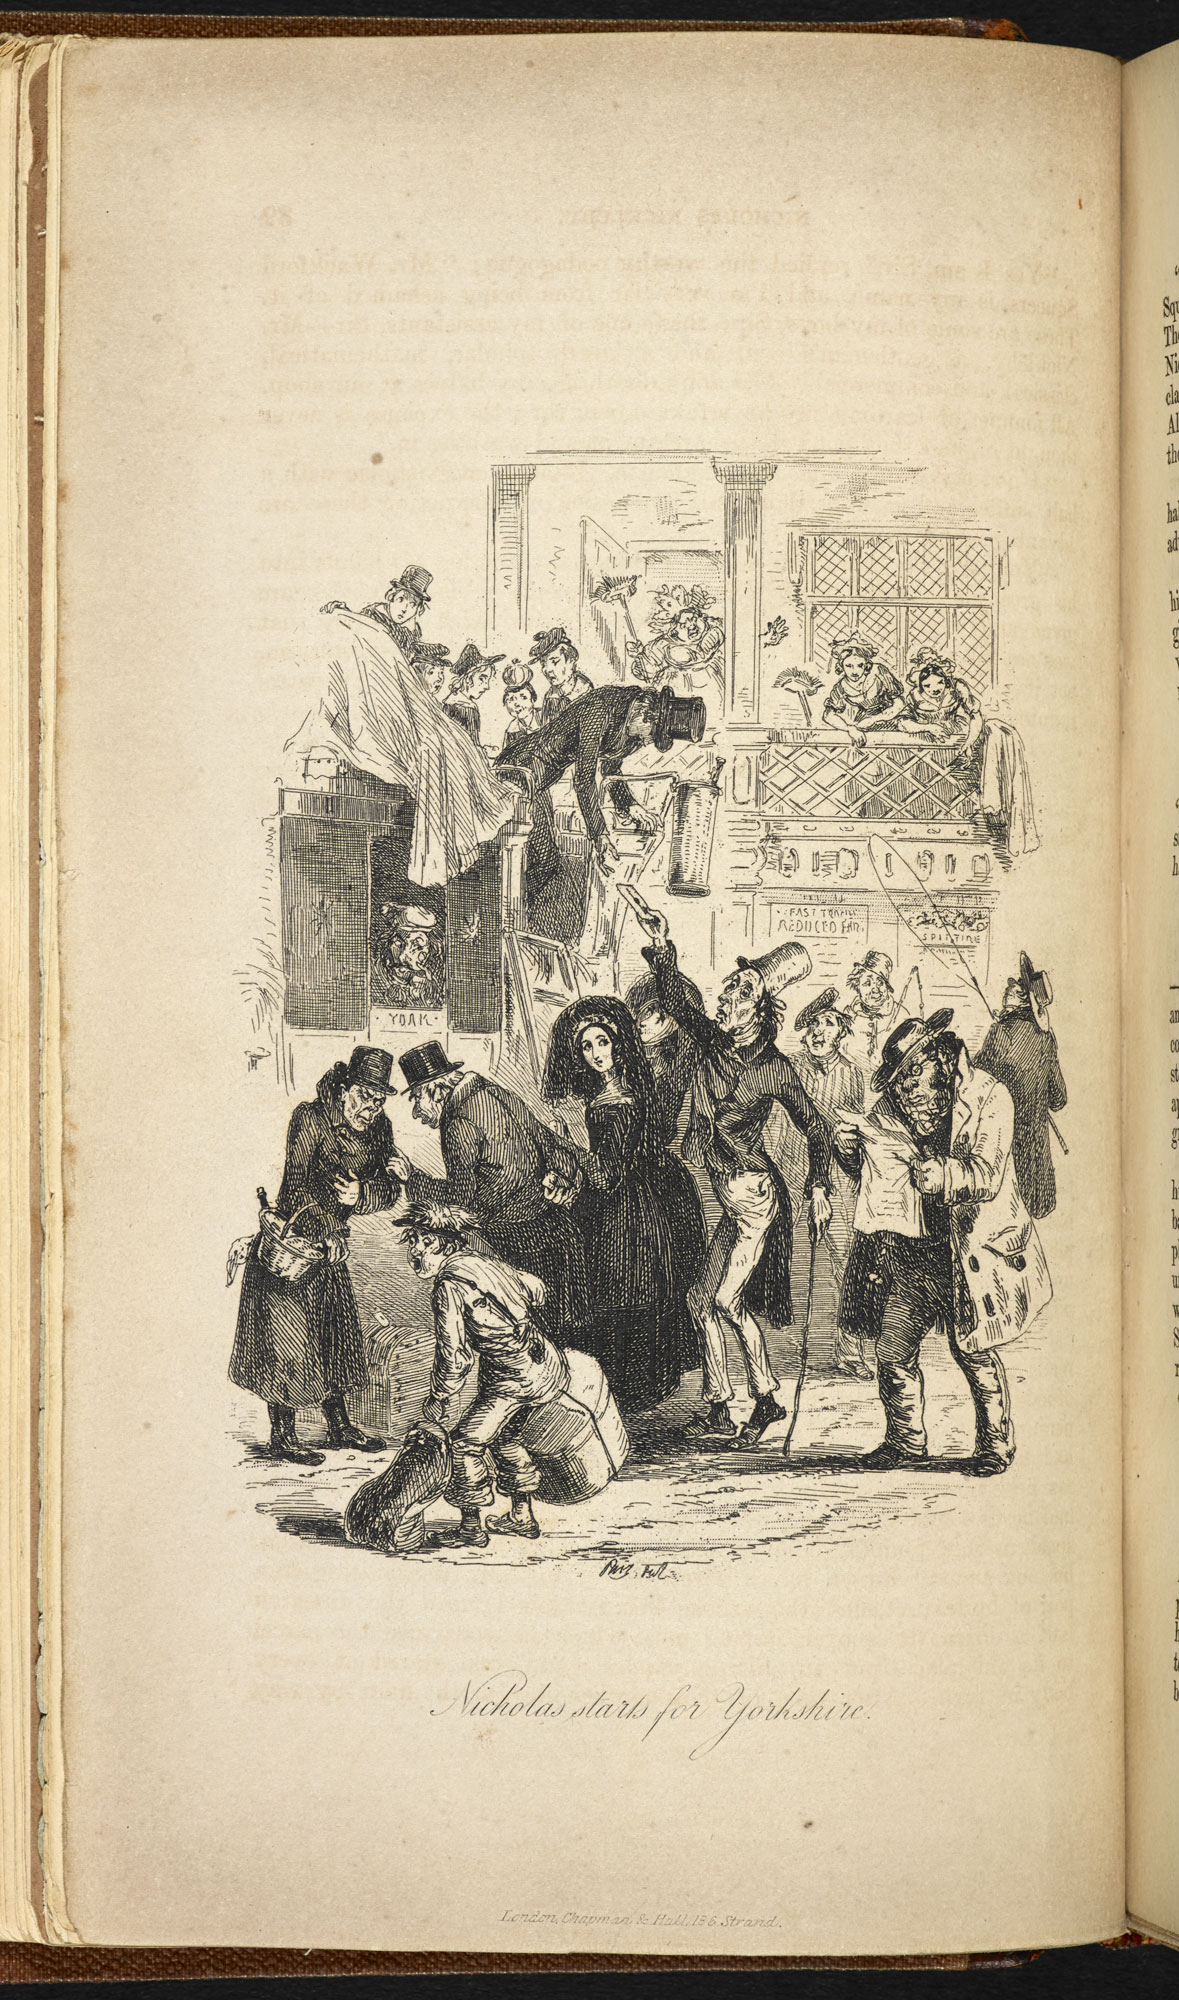 Illustrations to Nicholas Nickleby [page: facing p. 39]